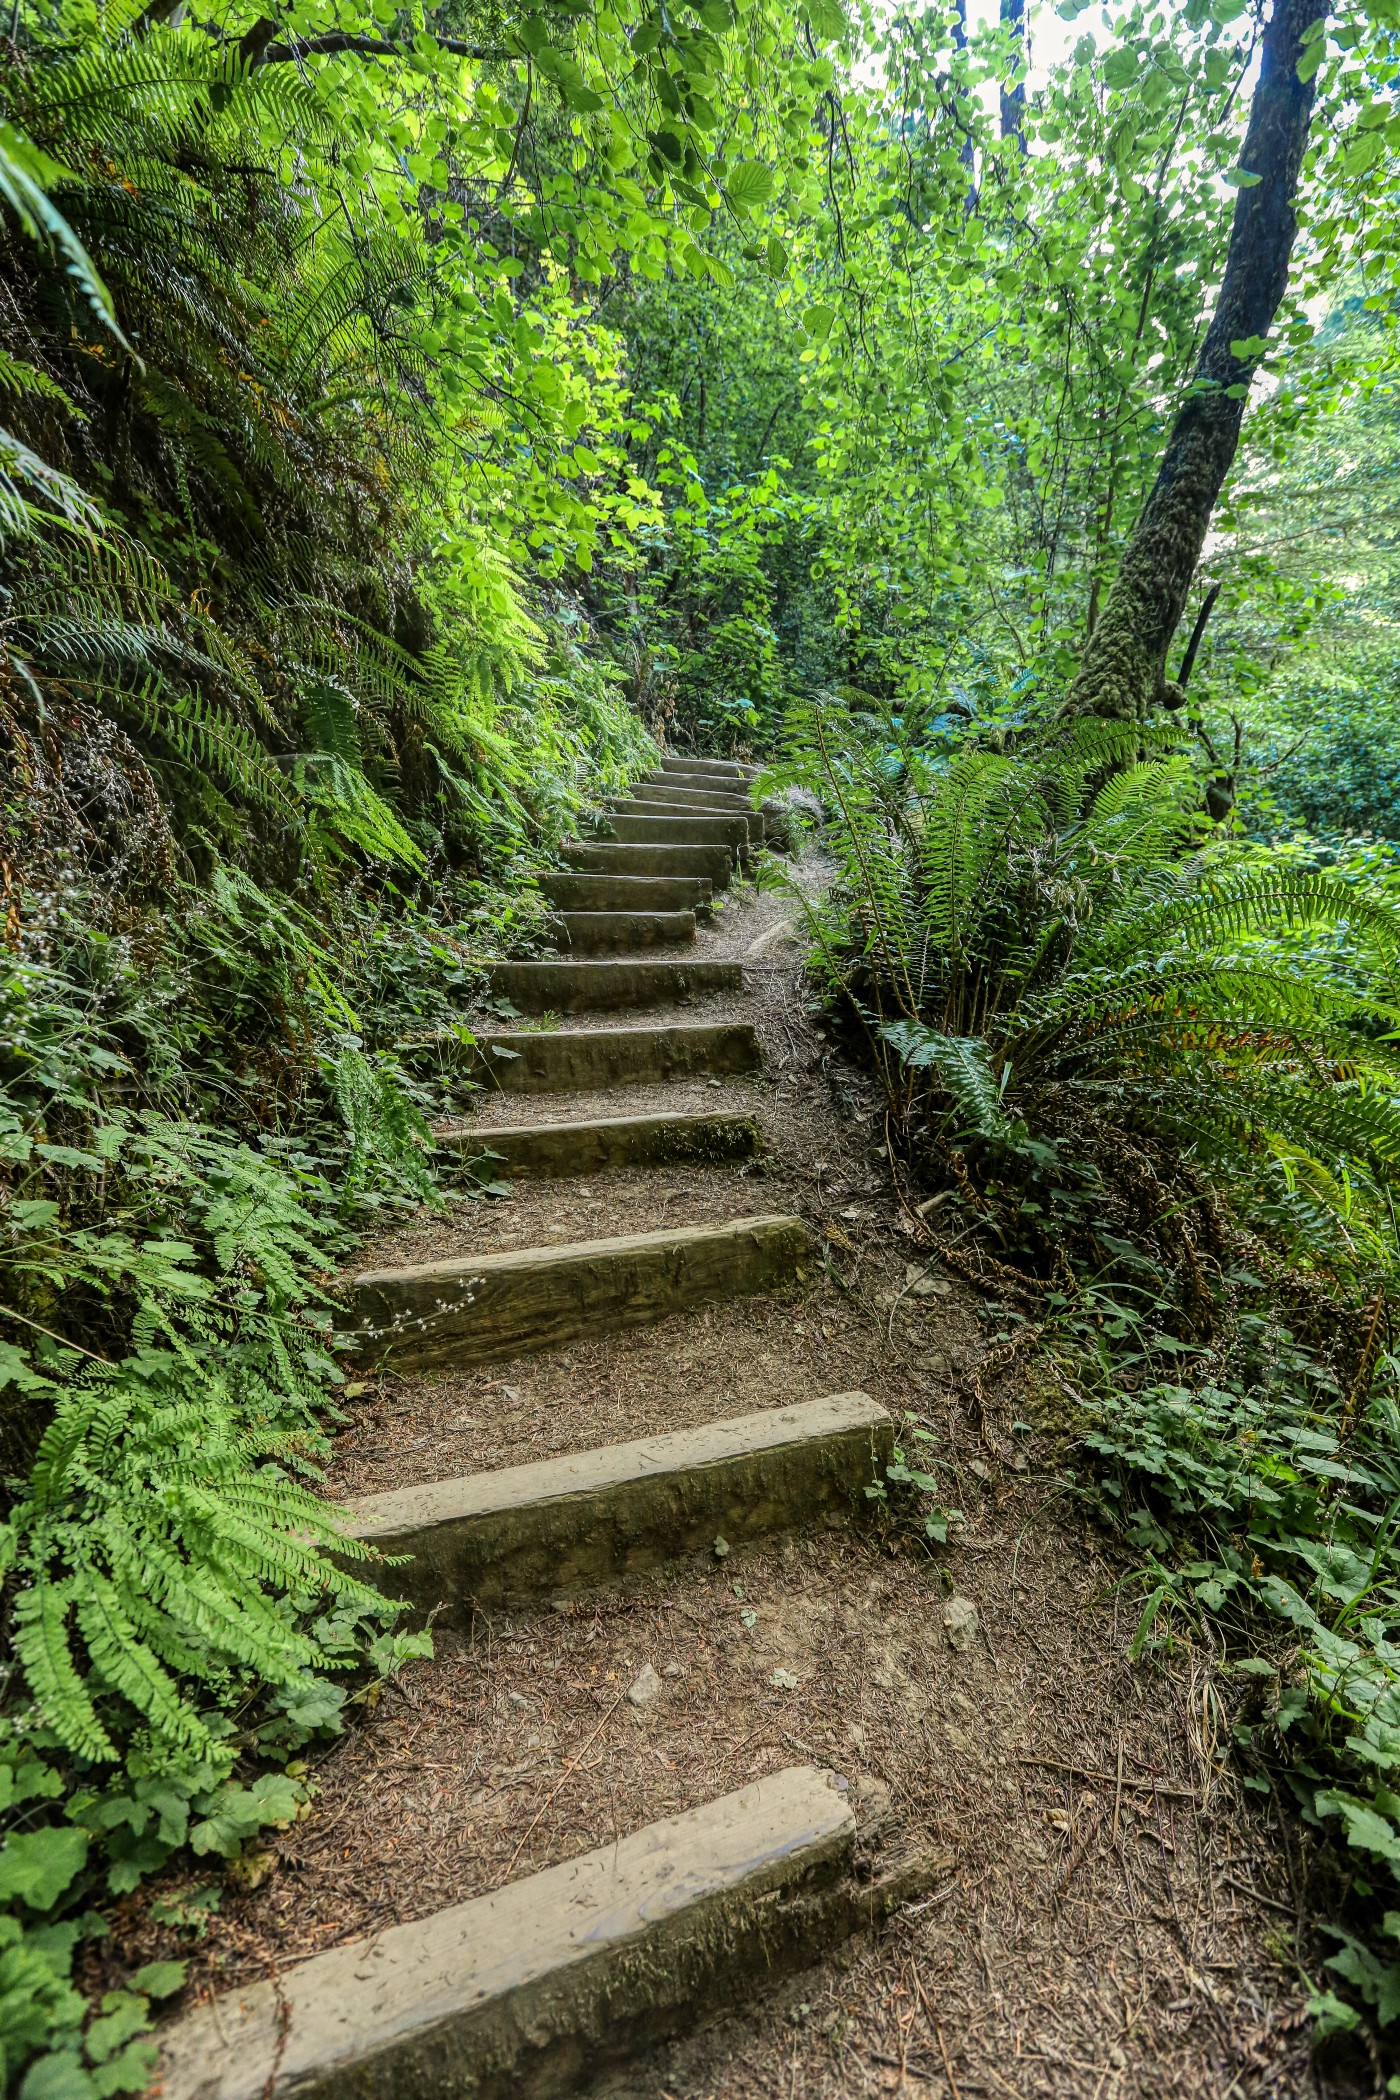 the image is of a winding path, fairly narrow in a forested area. There are logs in place in the form of steps to help the walker to climb and no lose his or her footing.